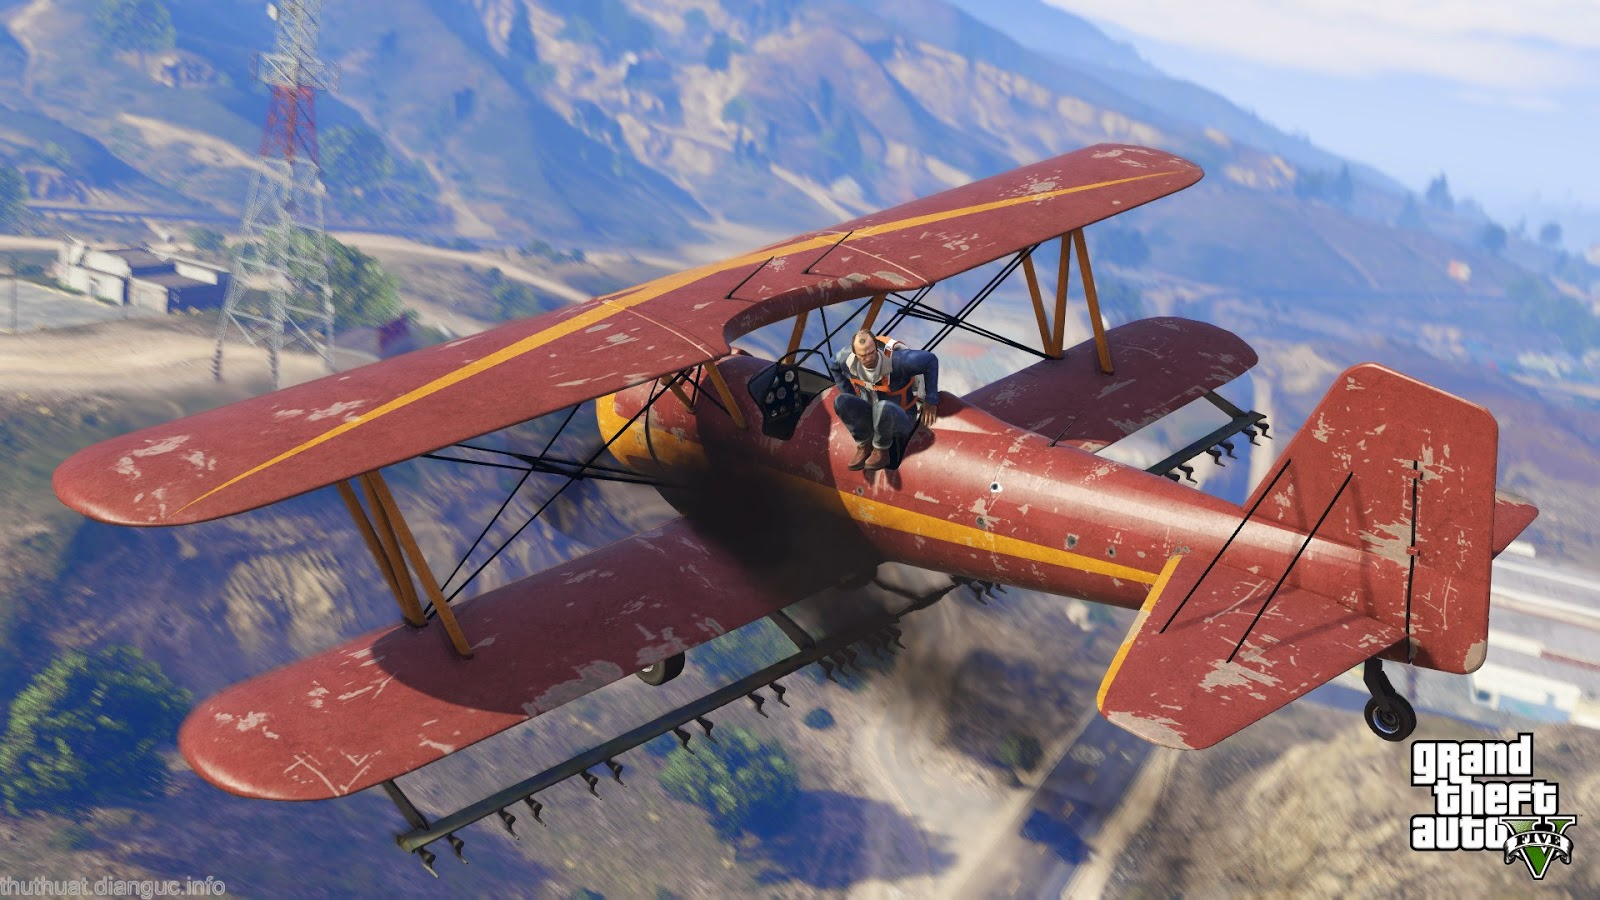 Grand Theft Auto V Delayed On PC Until January 2015